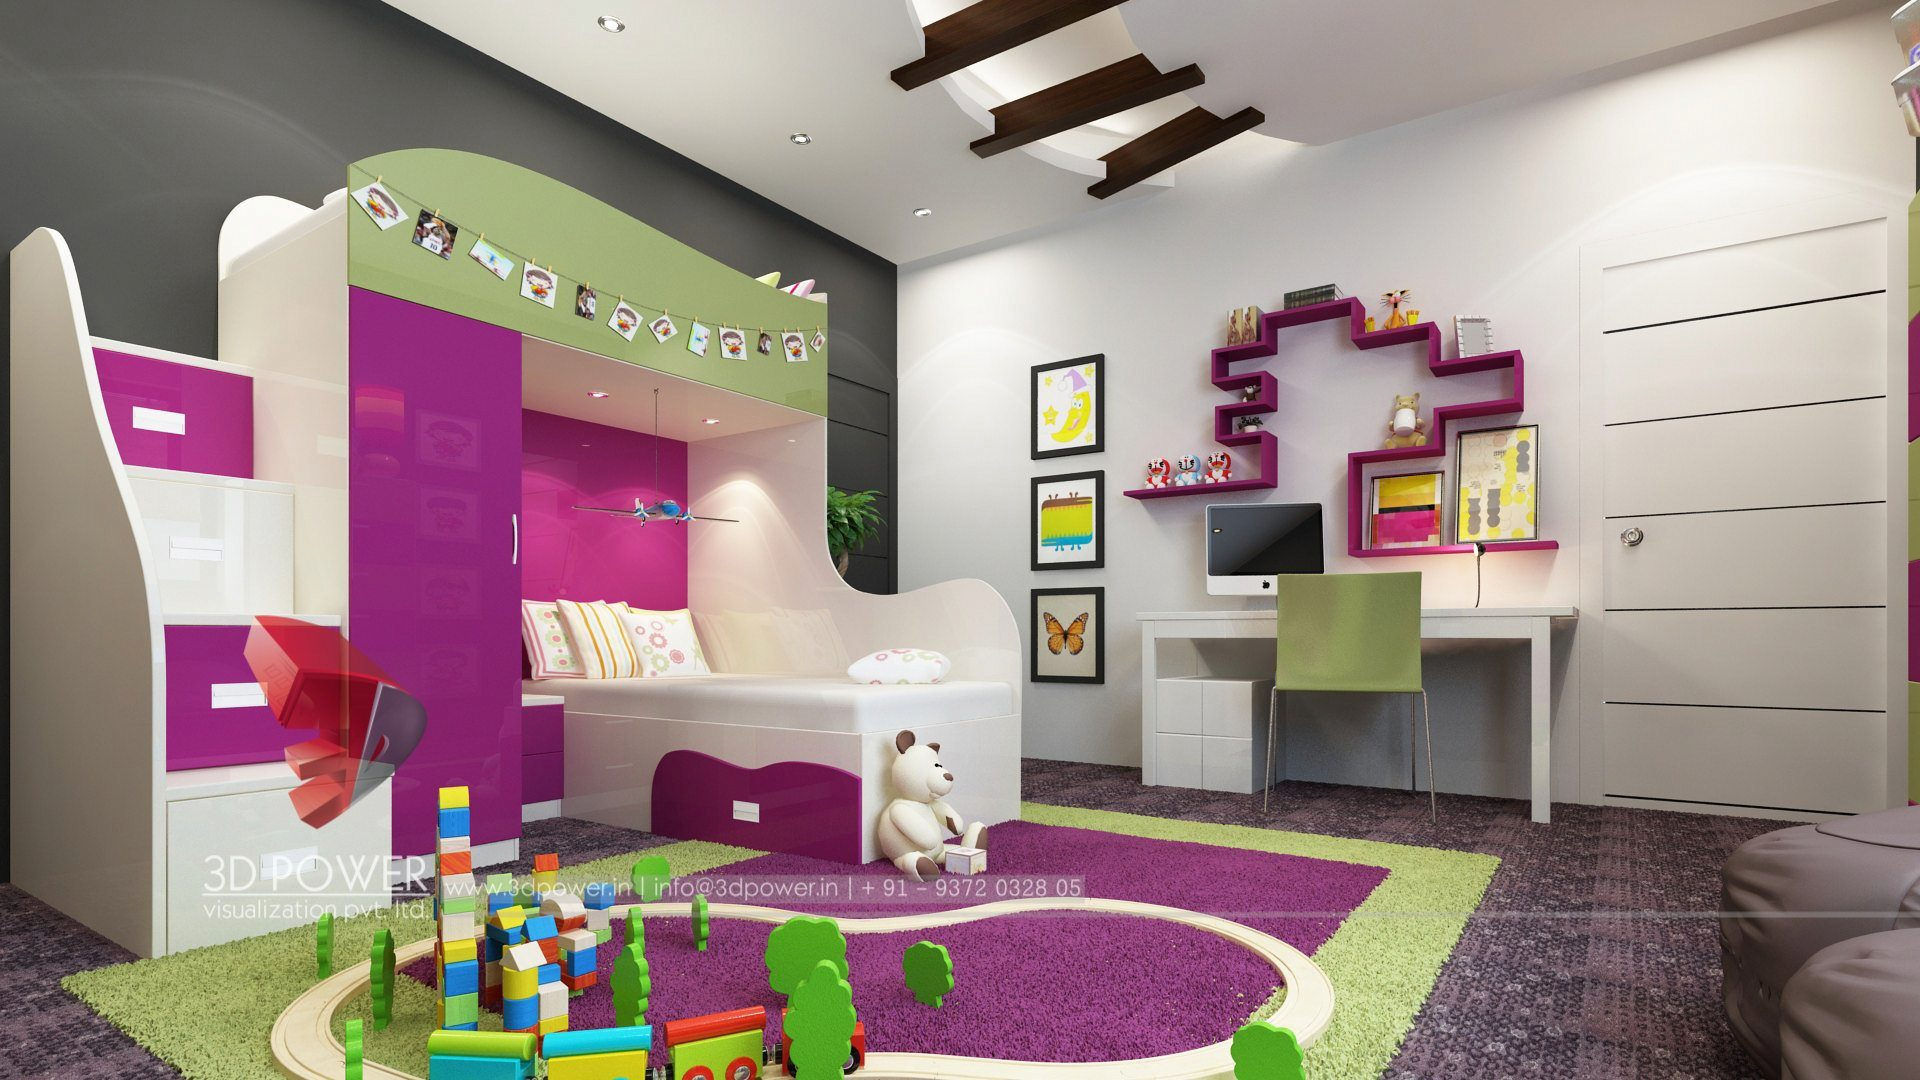 3d interior design rendering